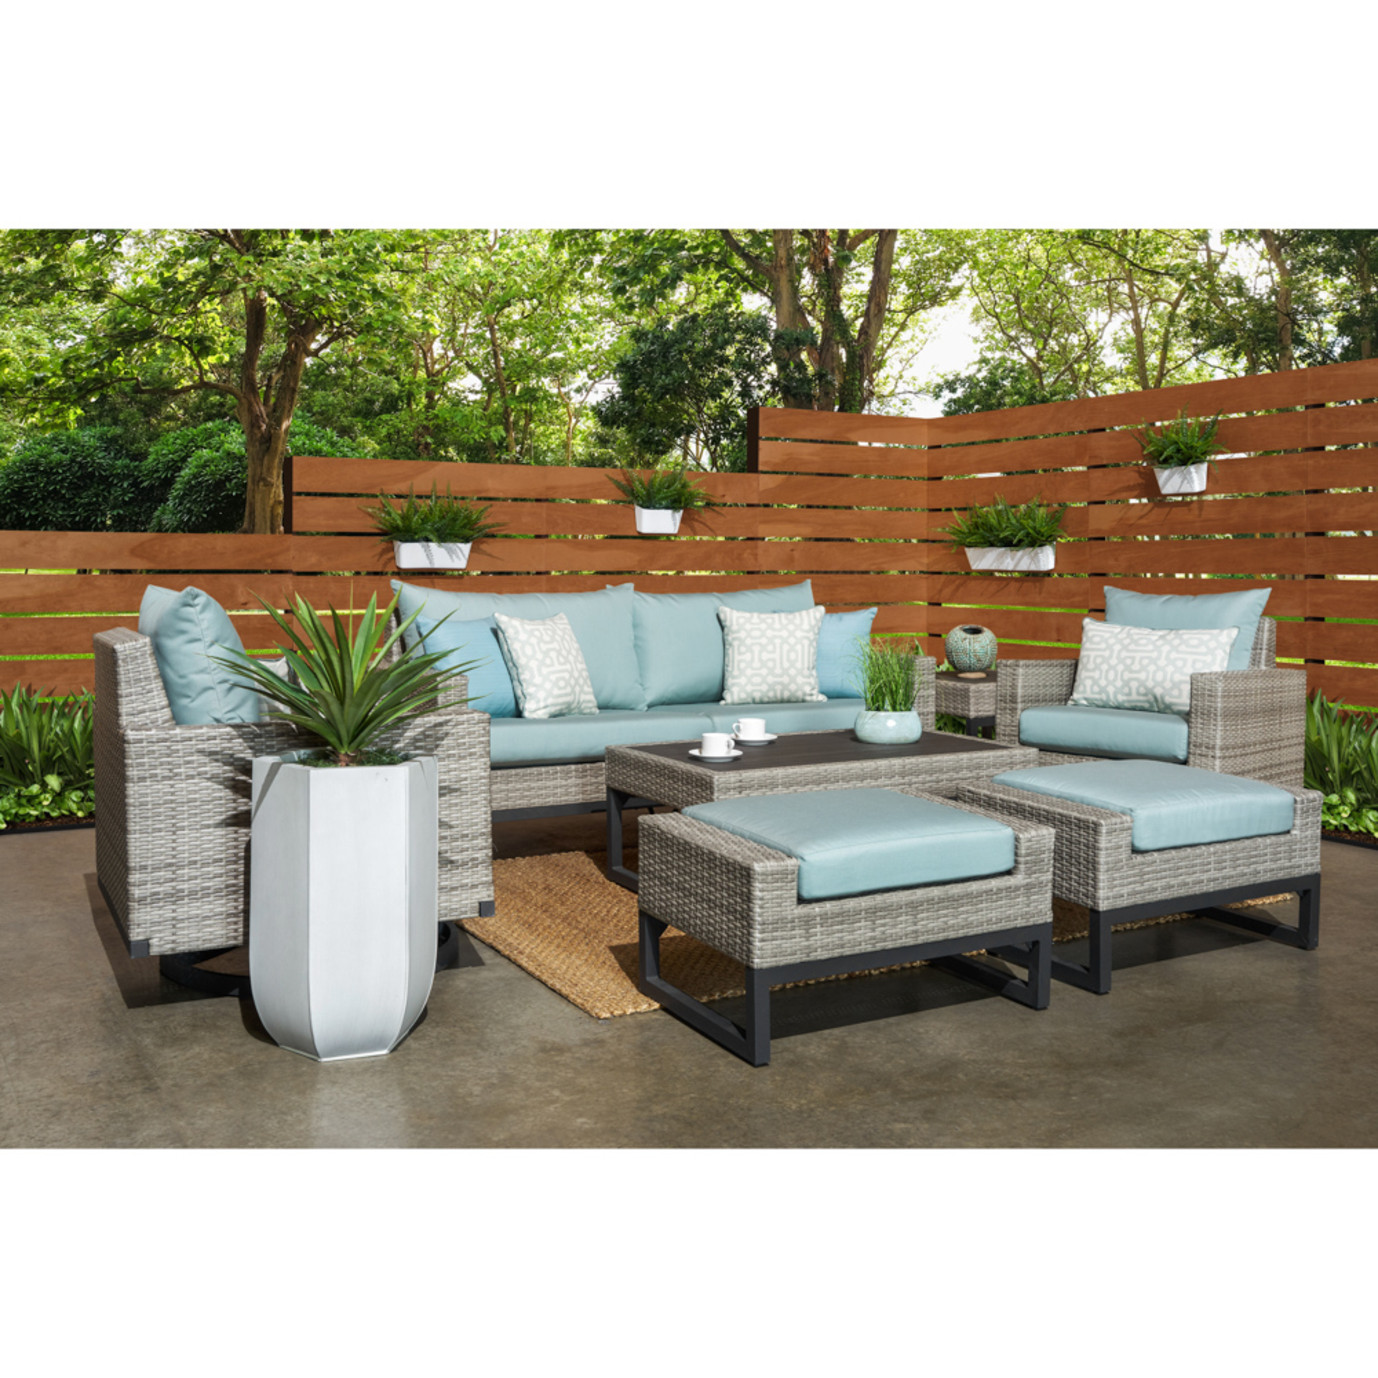 Milo™ Gray 7pc Motion Deep Seating Set - Spa Blue